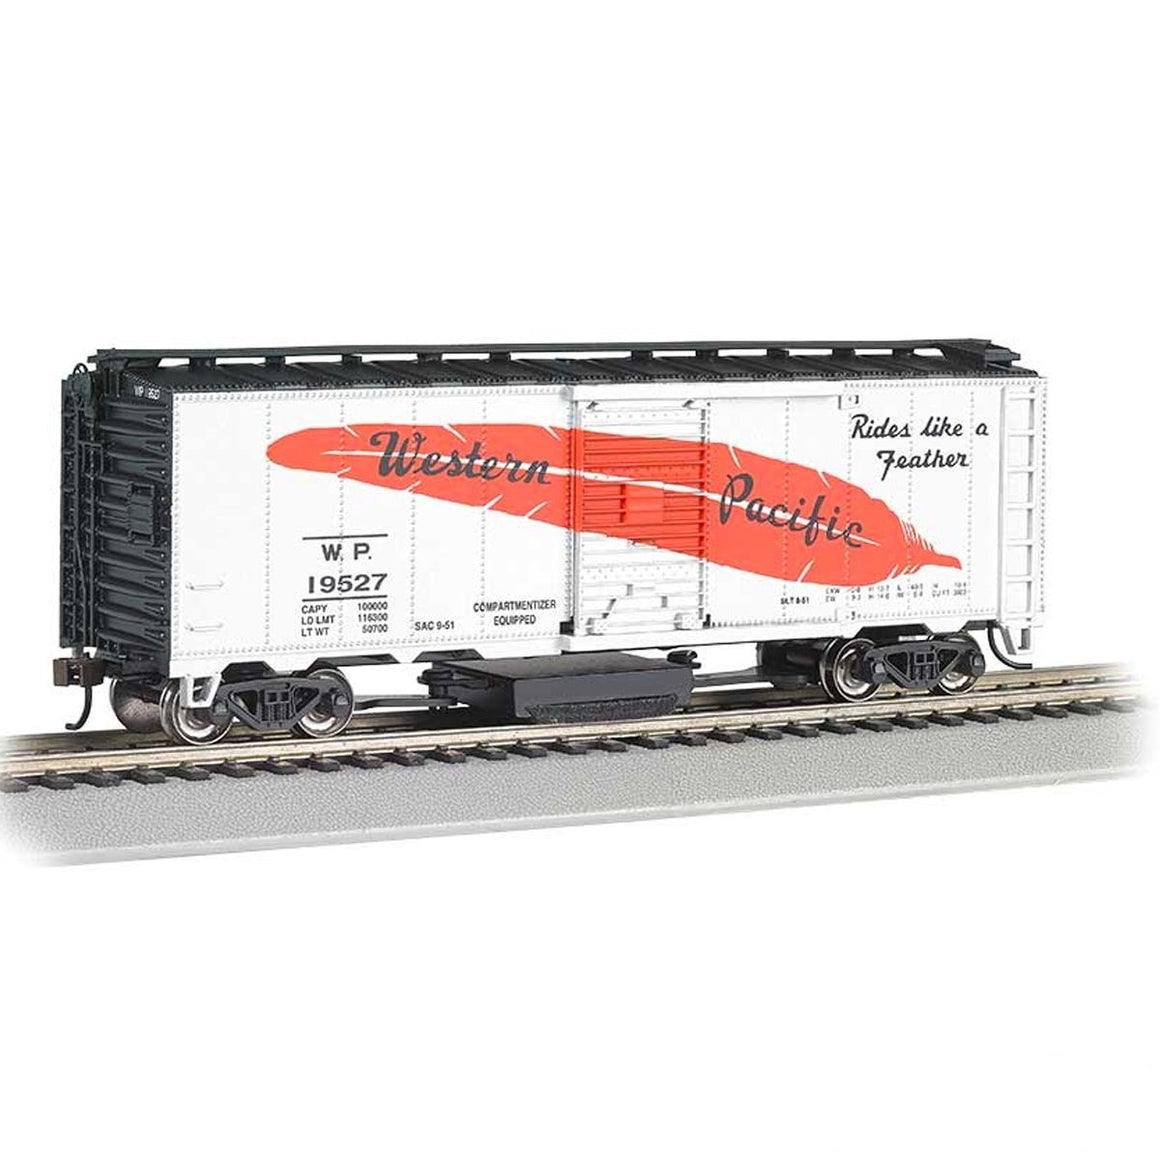 HO Scale: 40' Track Cleaning Boxcar - Western Pacific